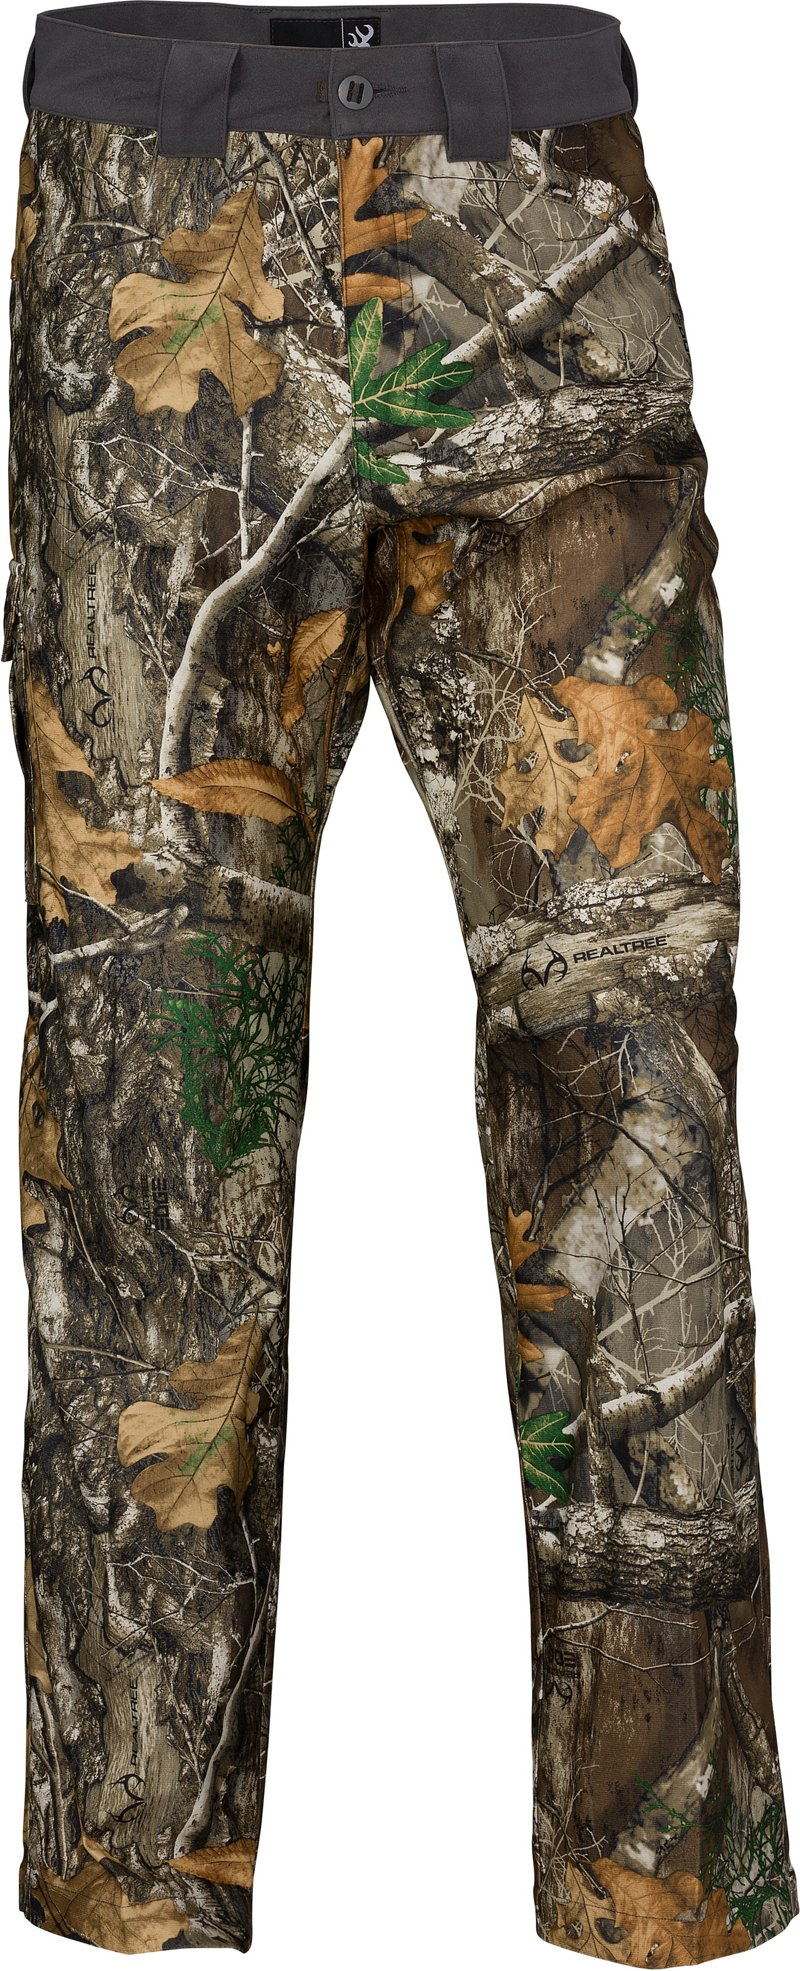 Browning Men's Arid Camo Pants - Camo Clothing, Adult Non-Insulted Camo at Academy Sports thumbnail